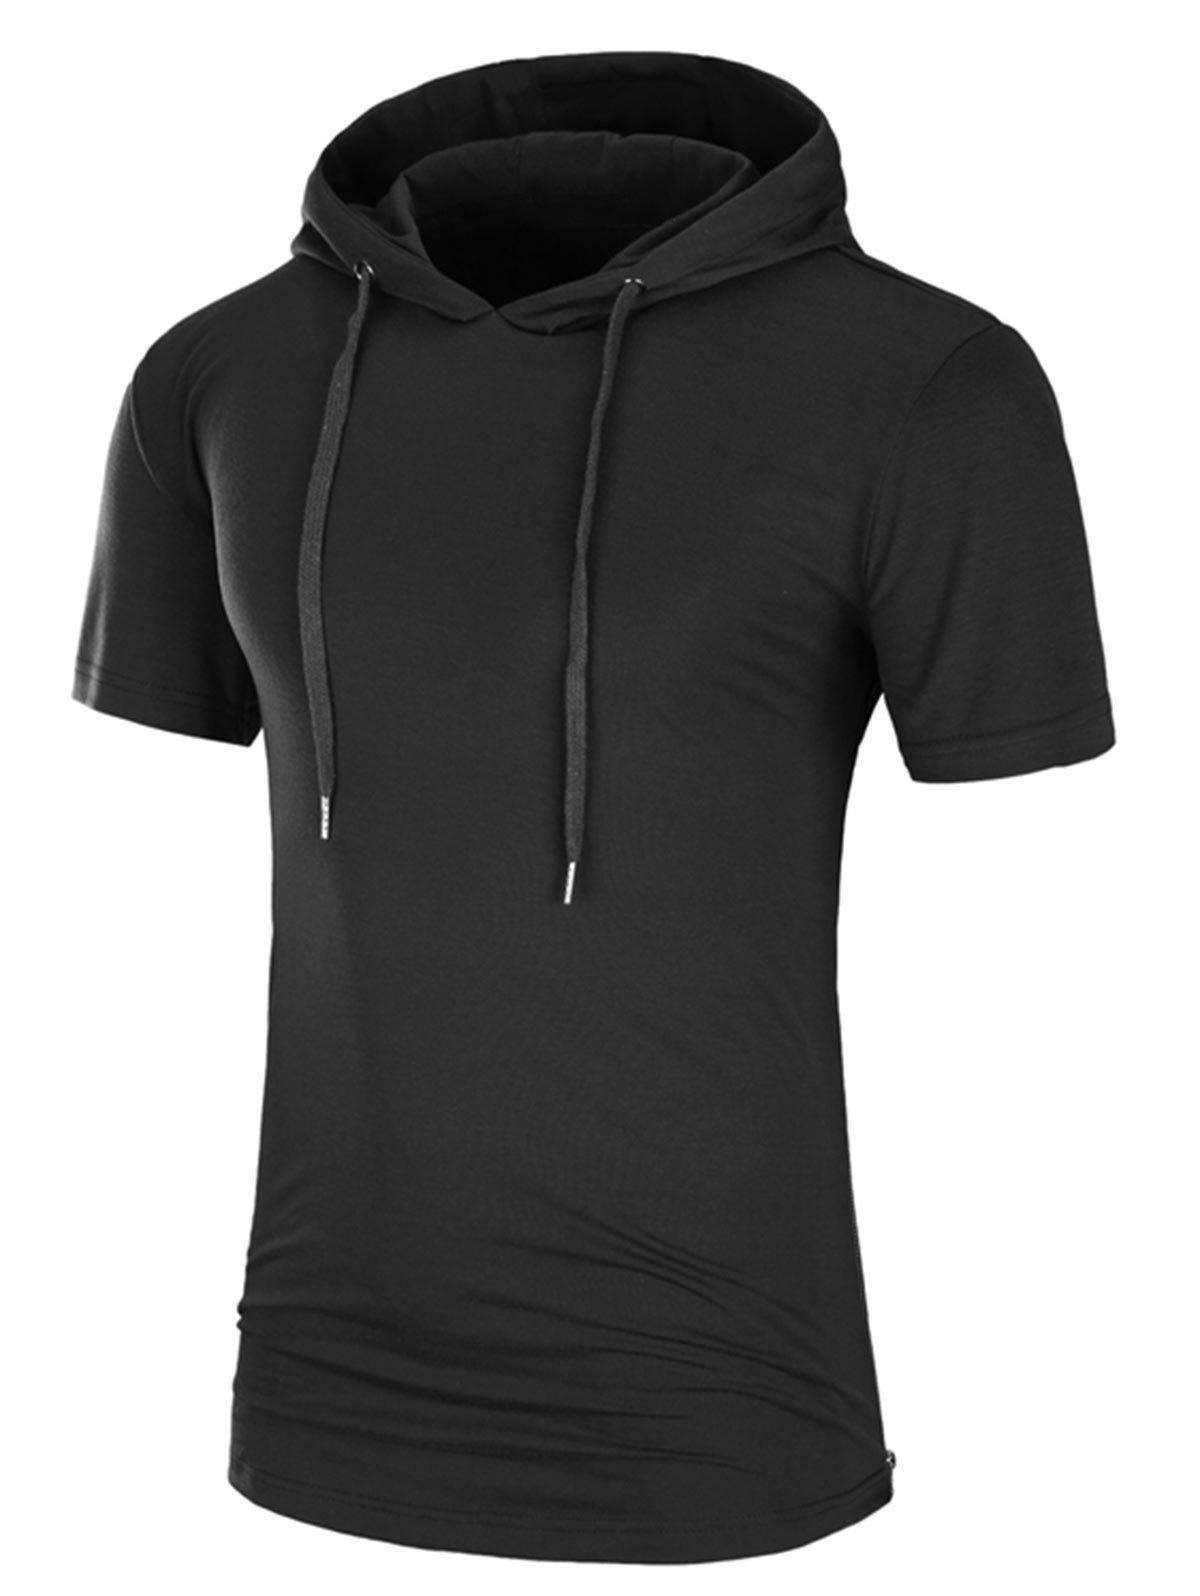 Hooded Side Zipper Longline T-Shirt - BLACK 3XL